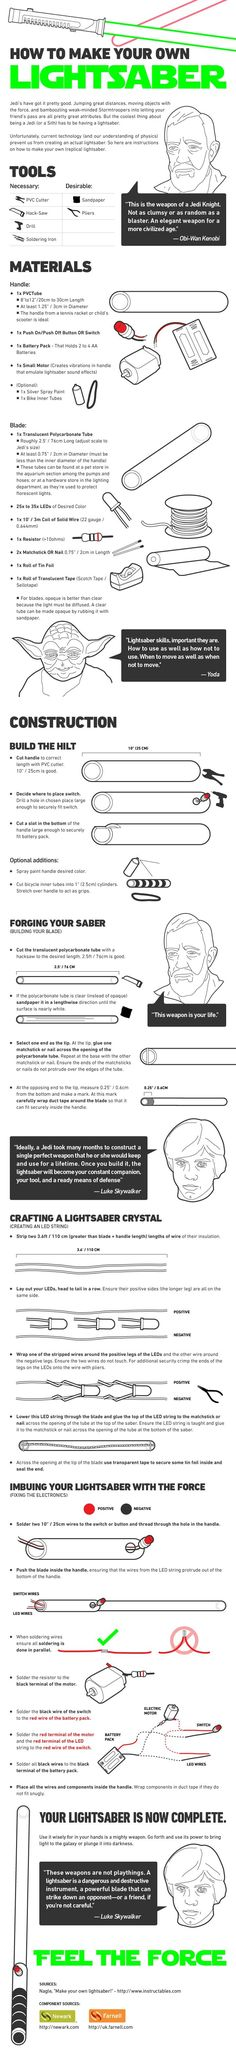 Finally, an Infographic That Teaches You to Build a Lightsaber